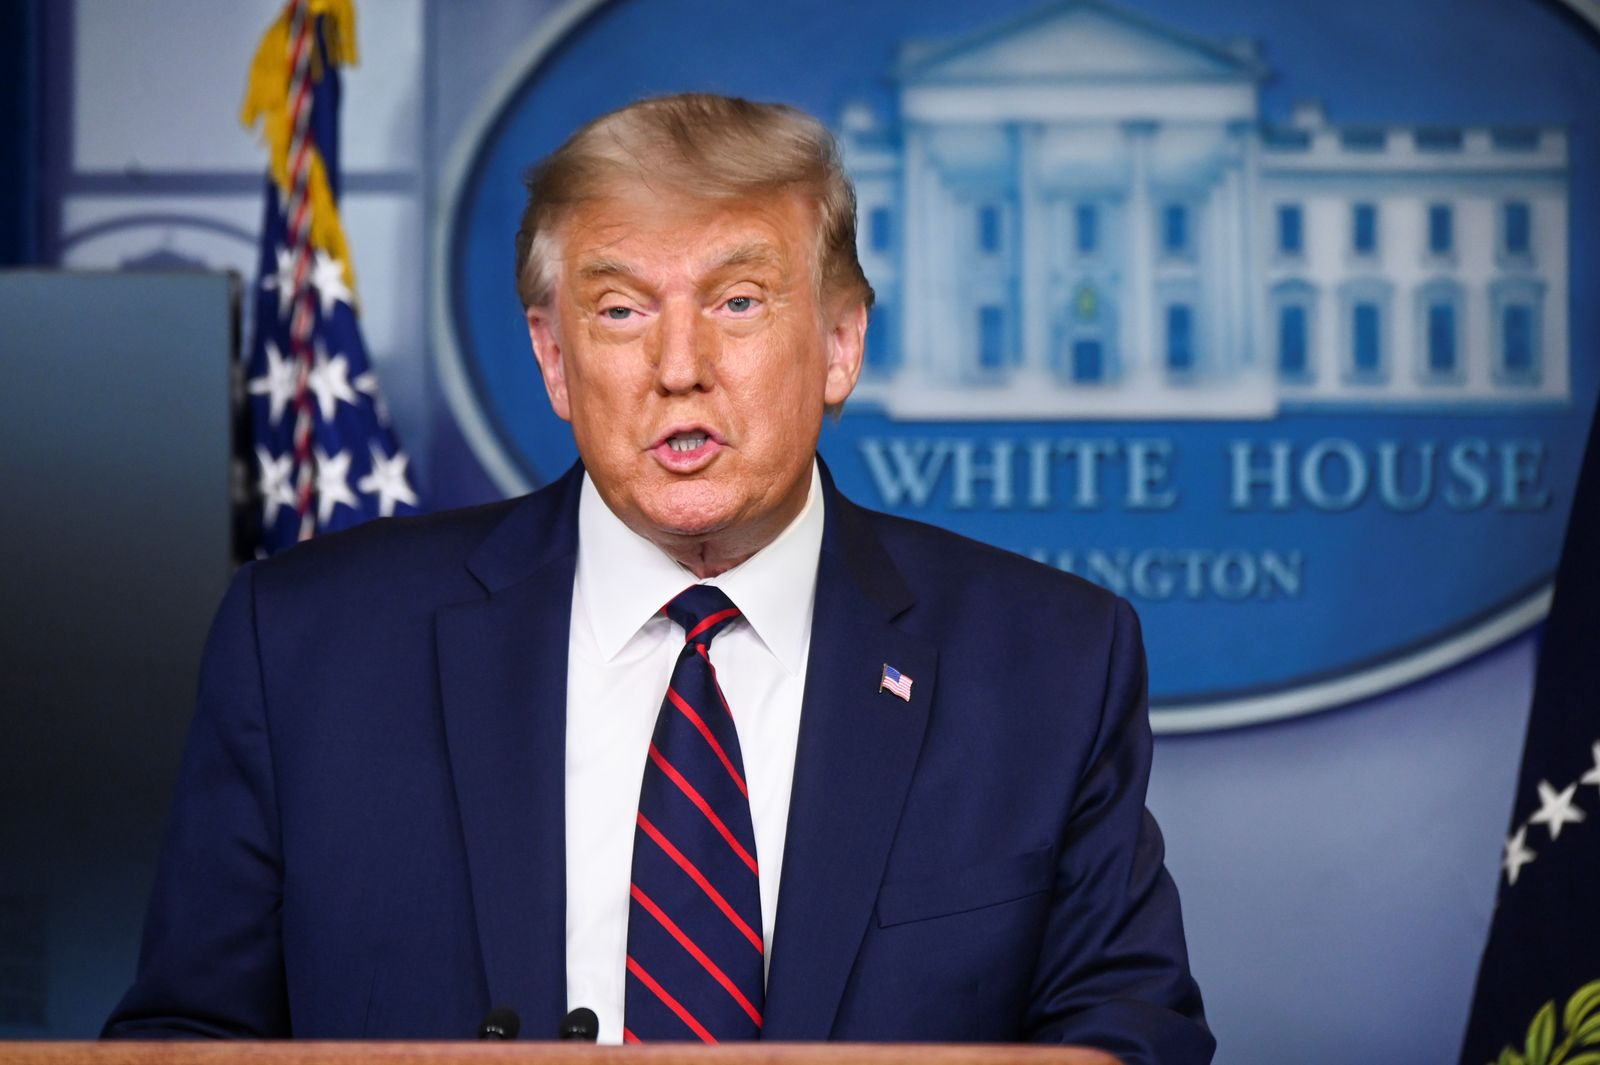 U.S. President Trump holds news conference in Washington